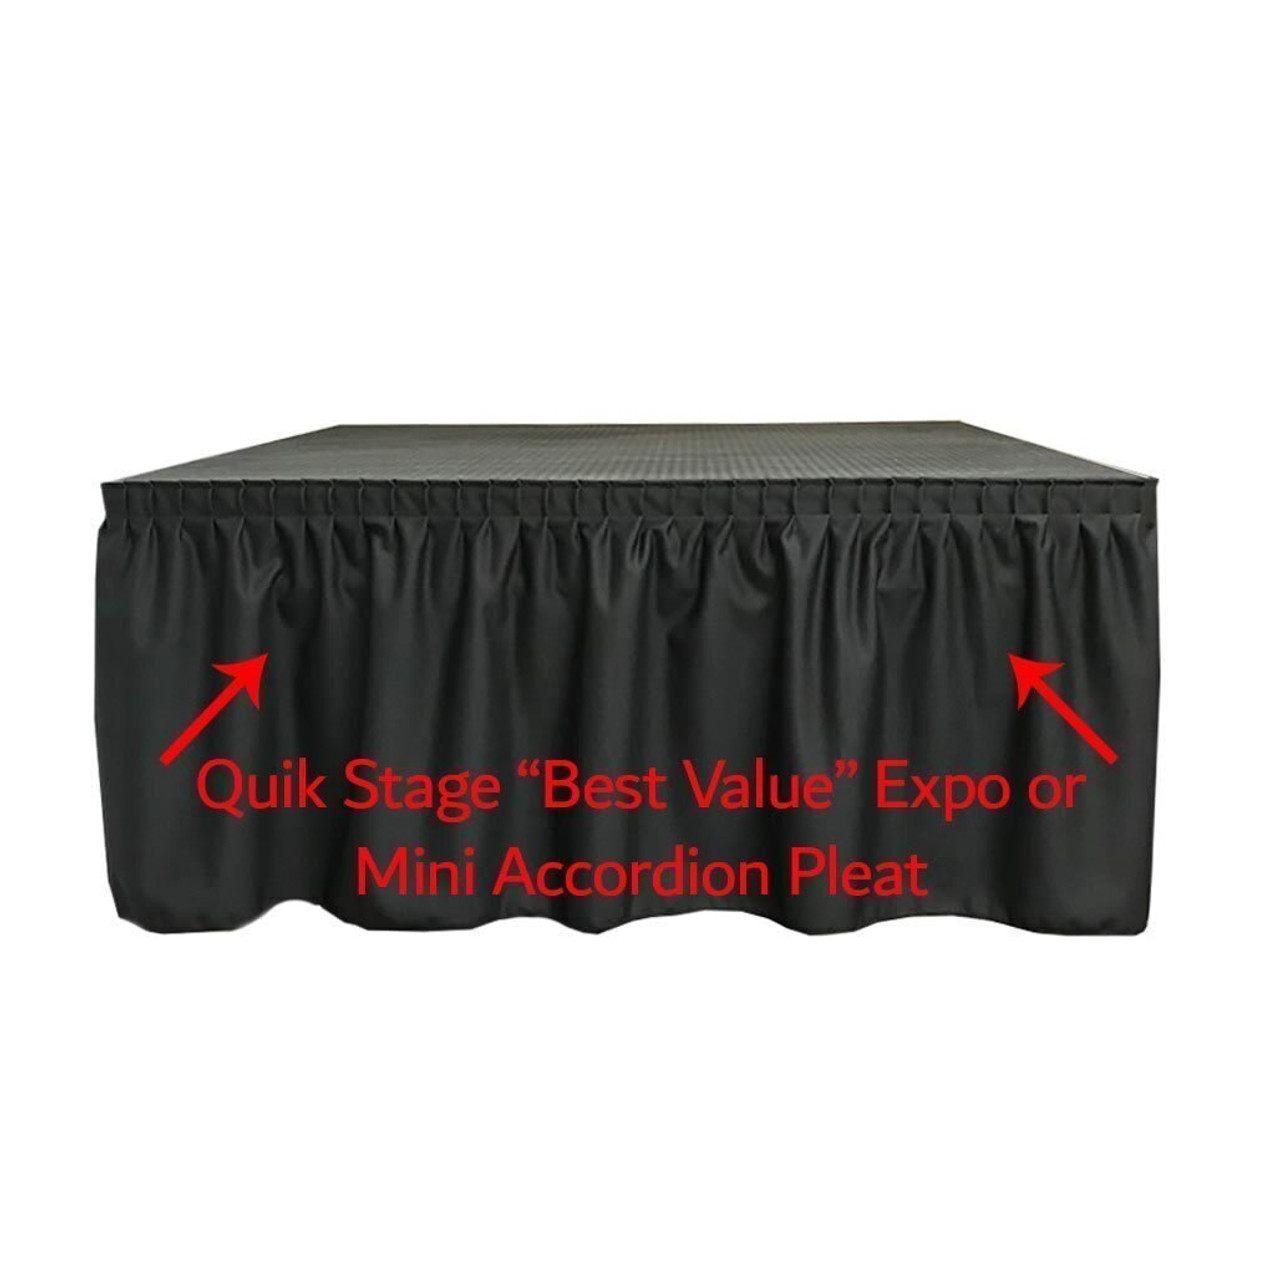 High Quality Quik Stage 8' x 8' High Portable Stage Package with Black Polyvinyl Non-Skid Surface. Additional Heights and Surfaces Available. - Best Value Expo Pleat Stage Skirting.